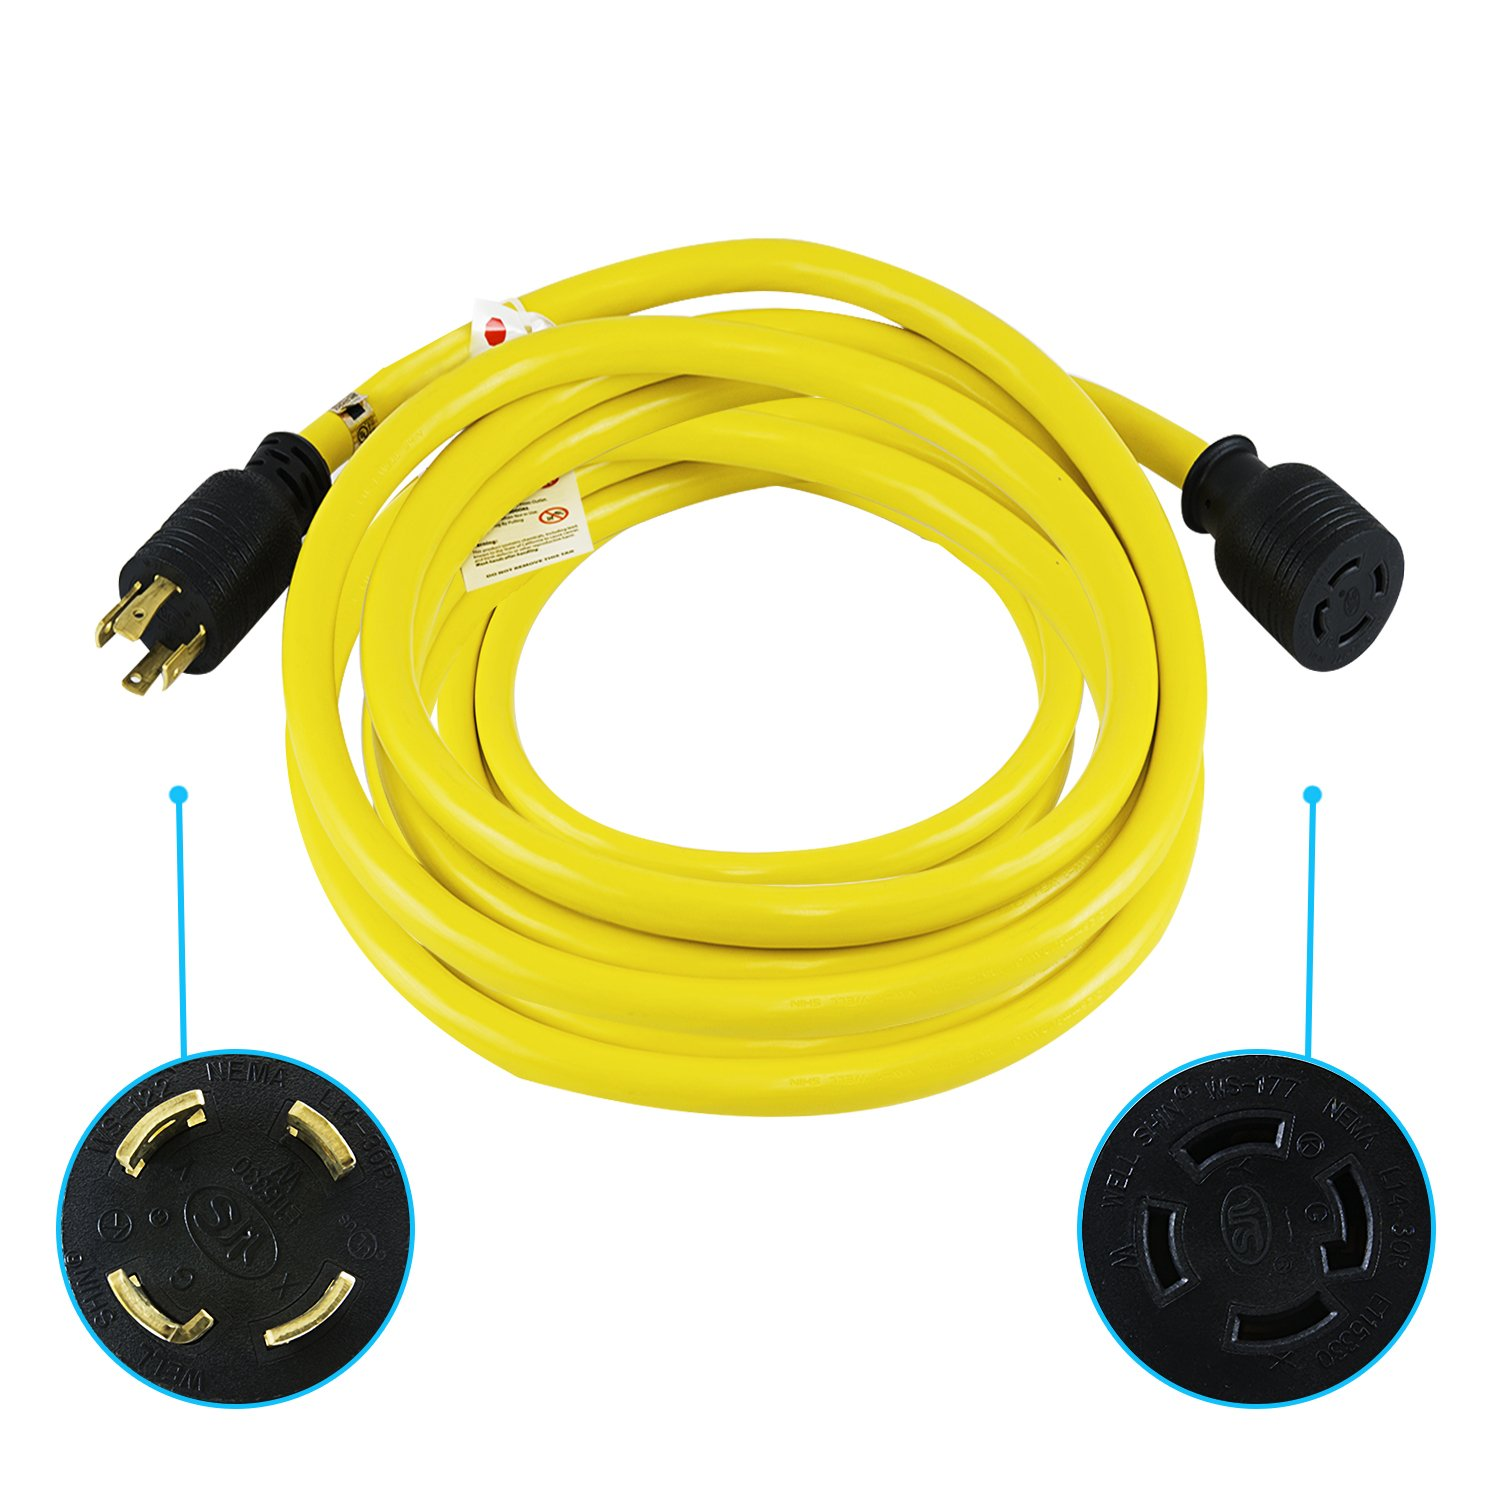 Houseables Generator Cord, Electric Extension Wire, 4 Prong, 30 Amp, 125-250v, Single, Yellow, 50 Ft, All Rubber, 10 Gauge, Heavy Duty, L14-30, Transfer, Electrical Power Cable, With Locking Switch